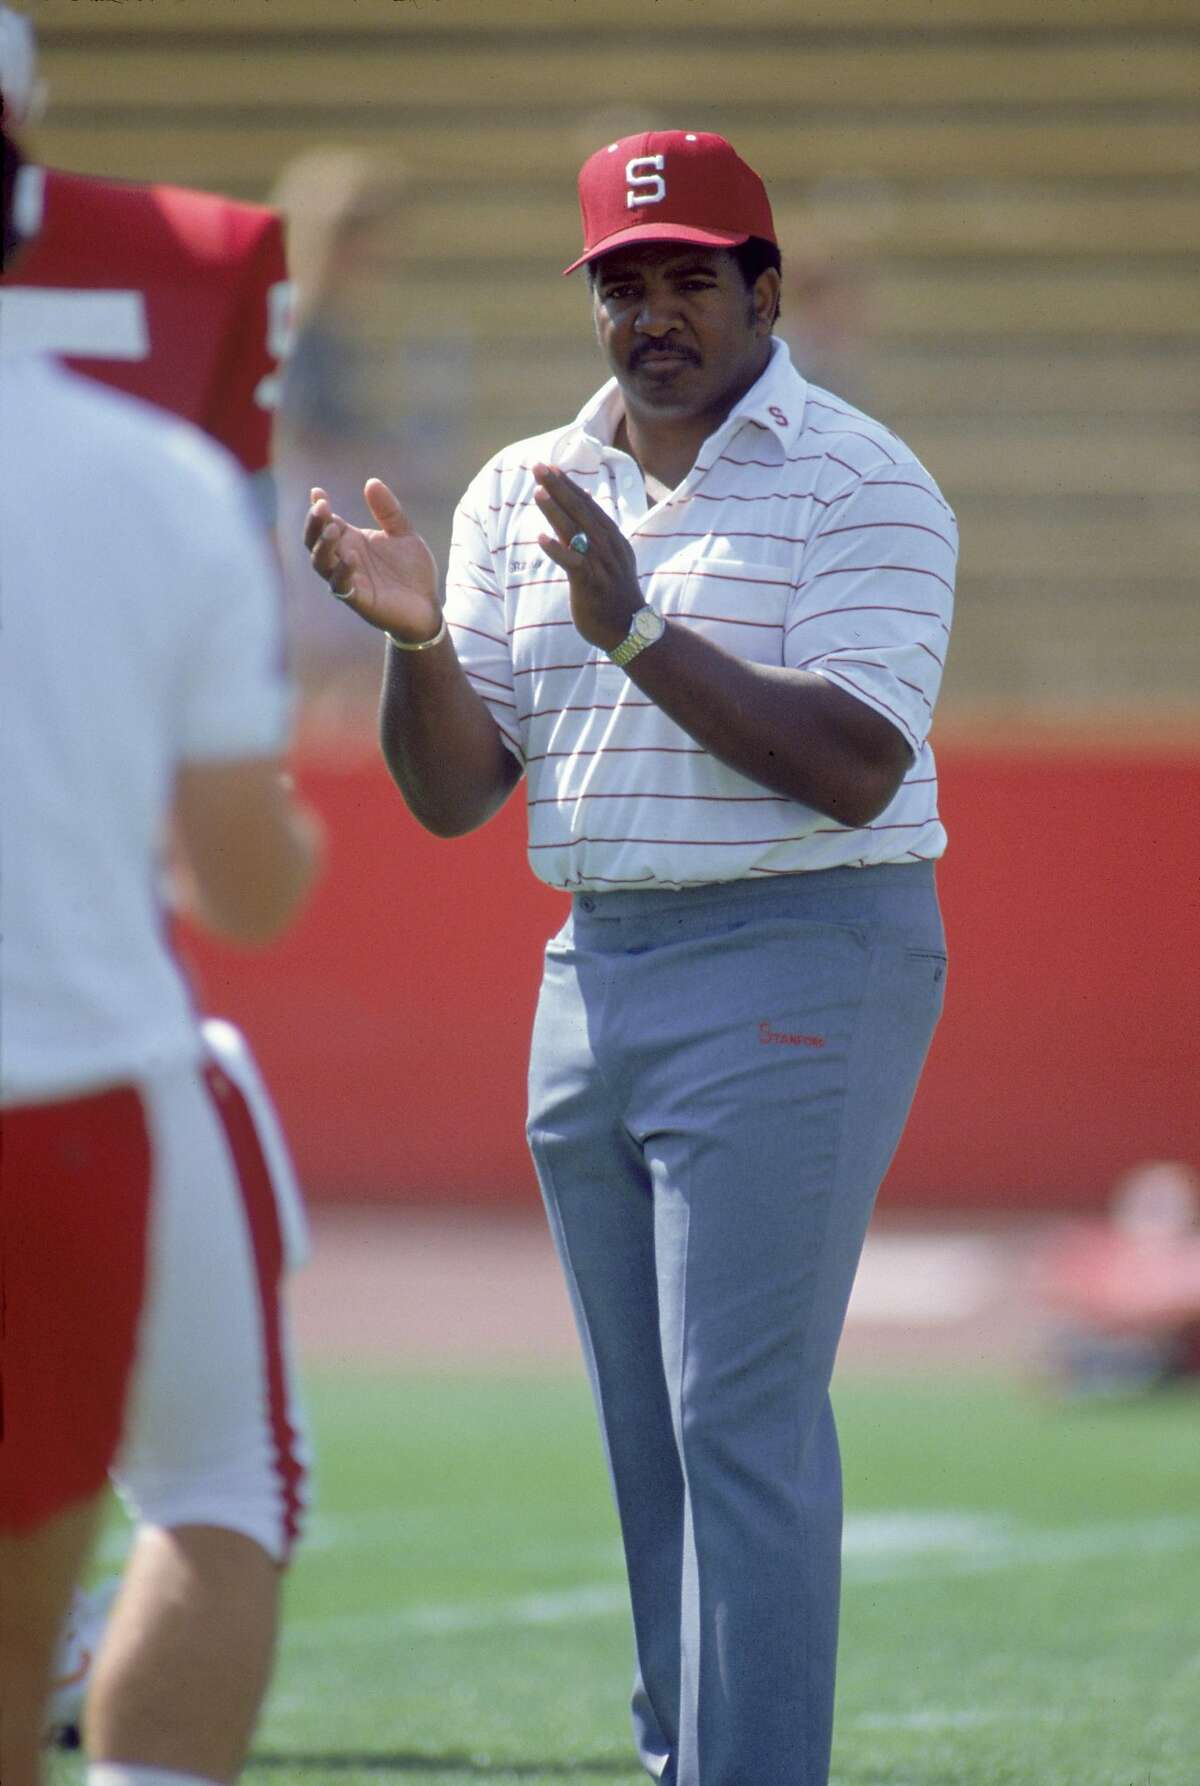 STANFORD, CA - OCTOBER 7: Head coach Dennis Green of the Stanford Cardinal looks on before the game against the Notre Dame Fighting Irish at Stanford Stadium on October 7, 1989 in Stanford, California. The Irish defeated the Cardinal 27-17. (Photo by Bernstein Associates/Getty Images)